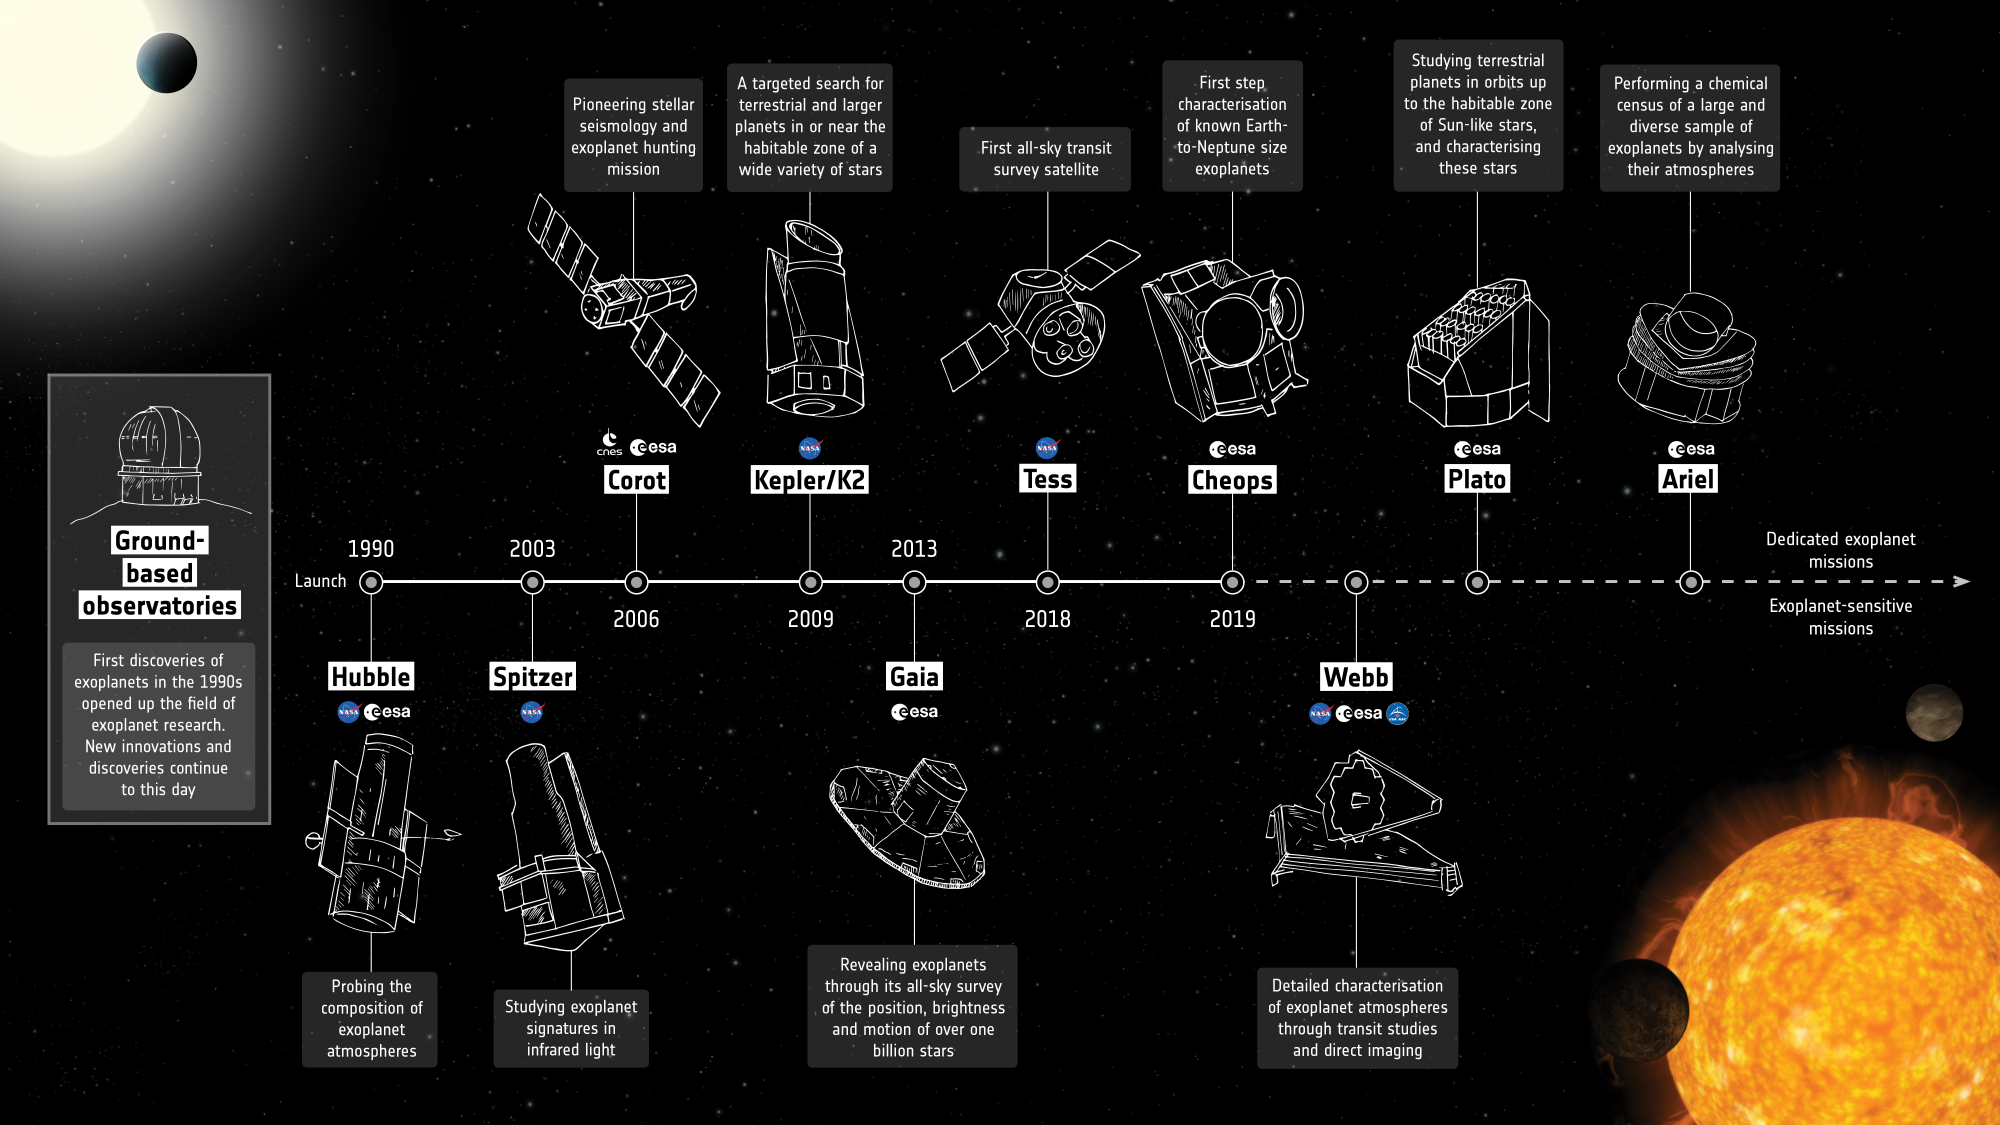 Exoplanets_missions_20201127_2k.png